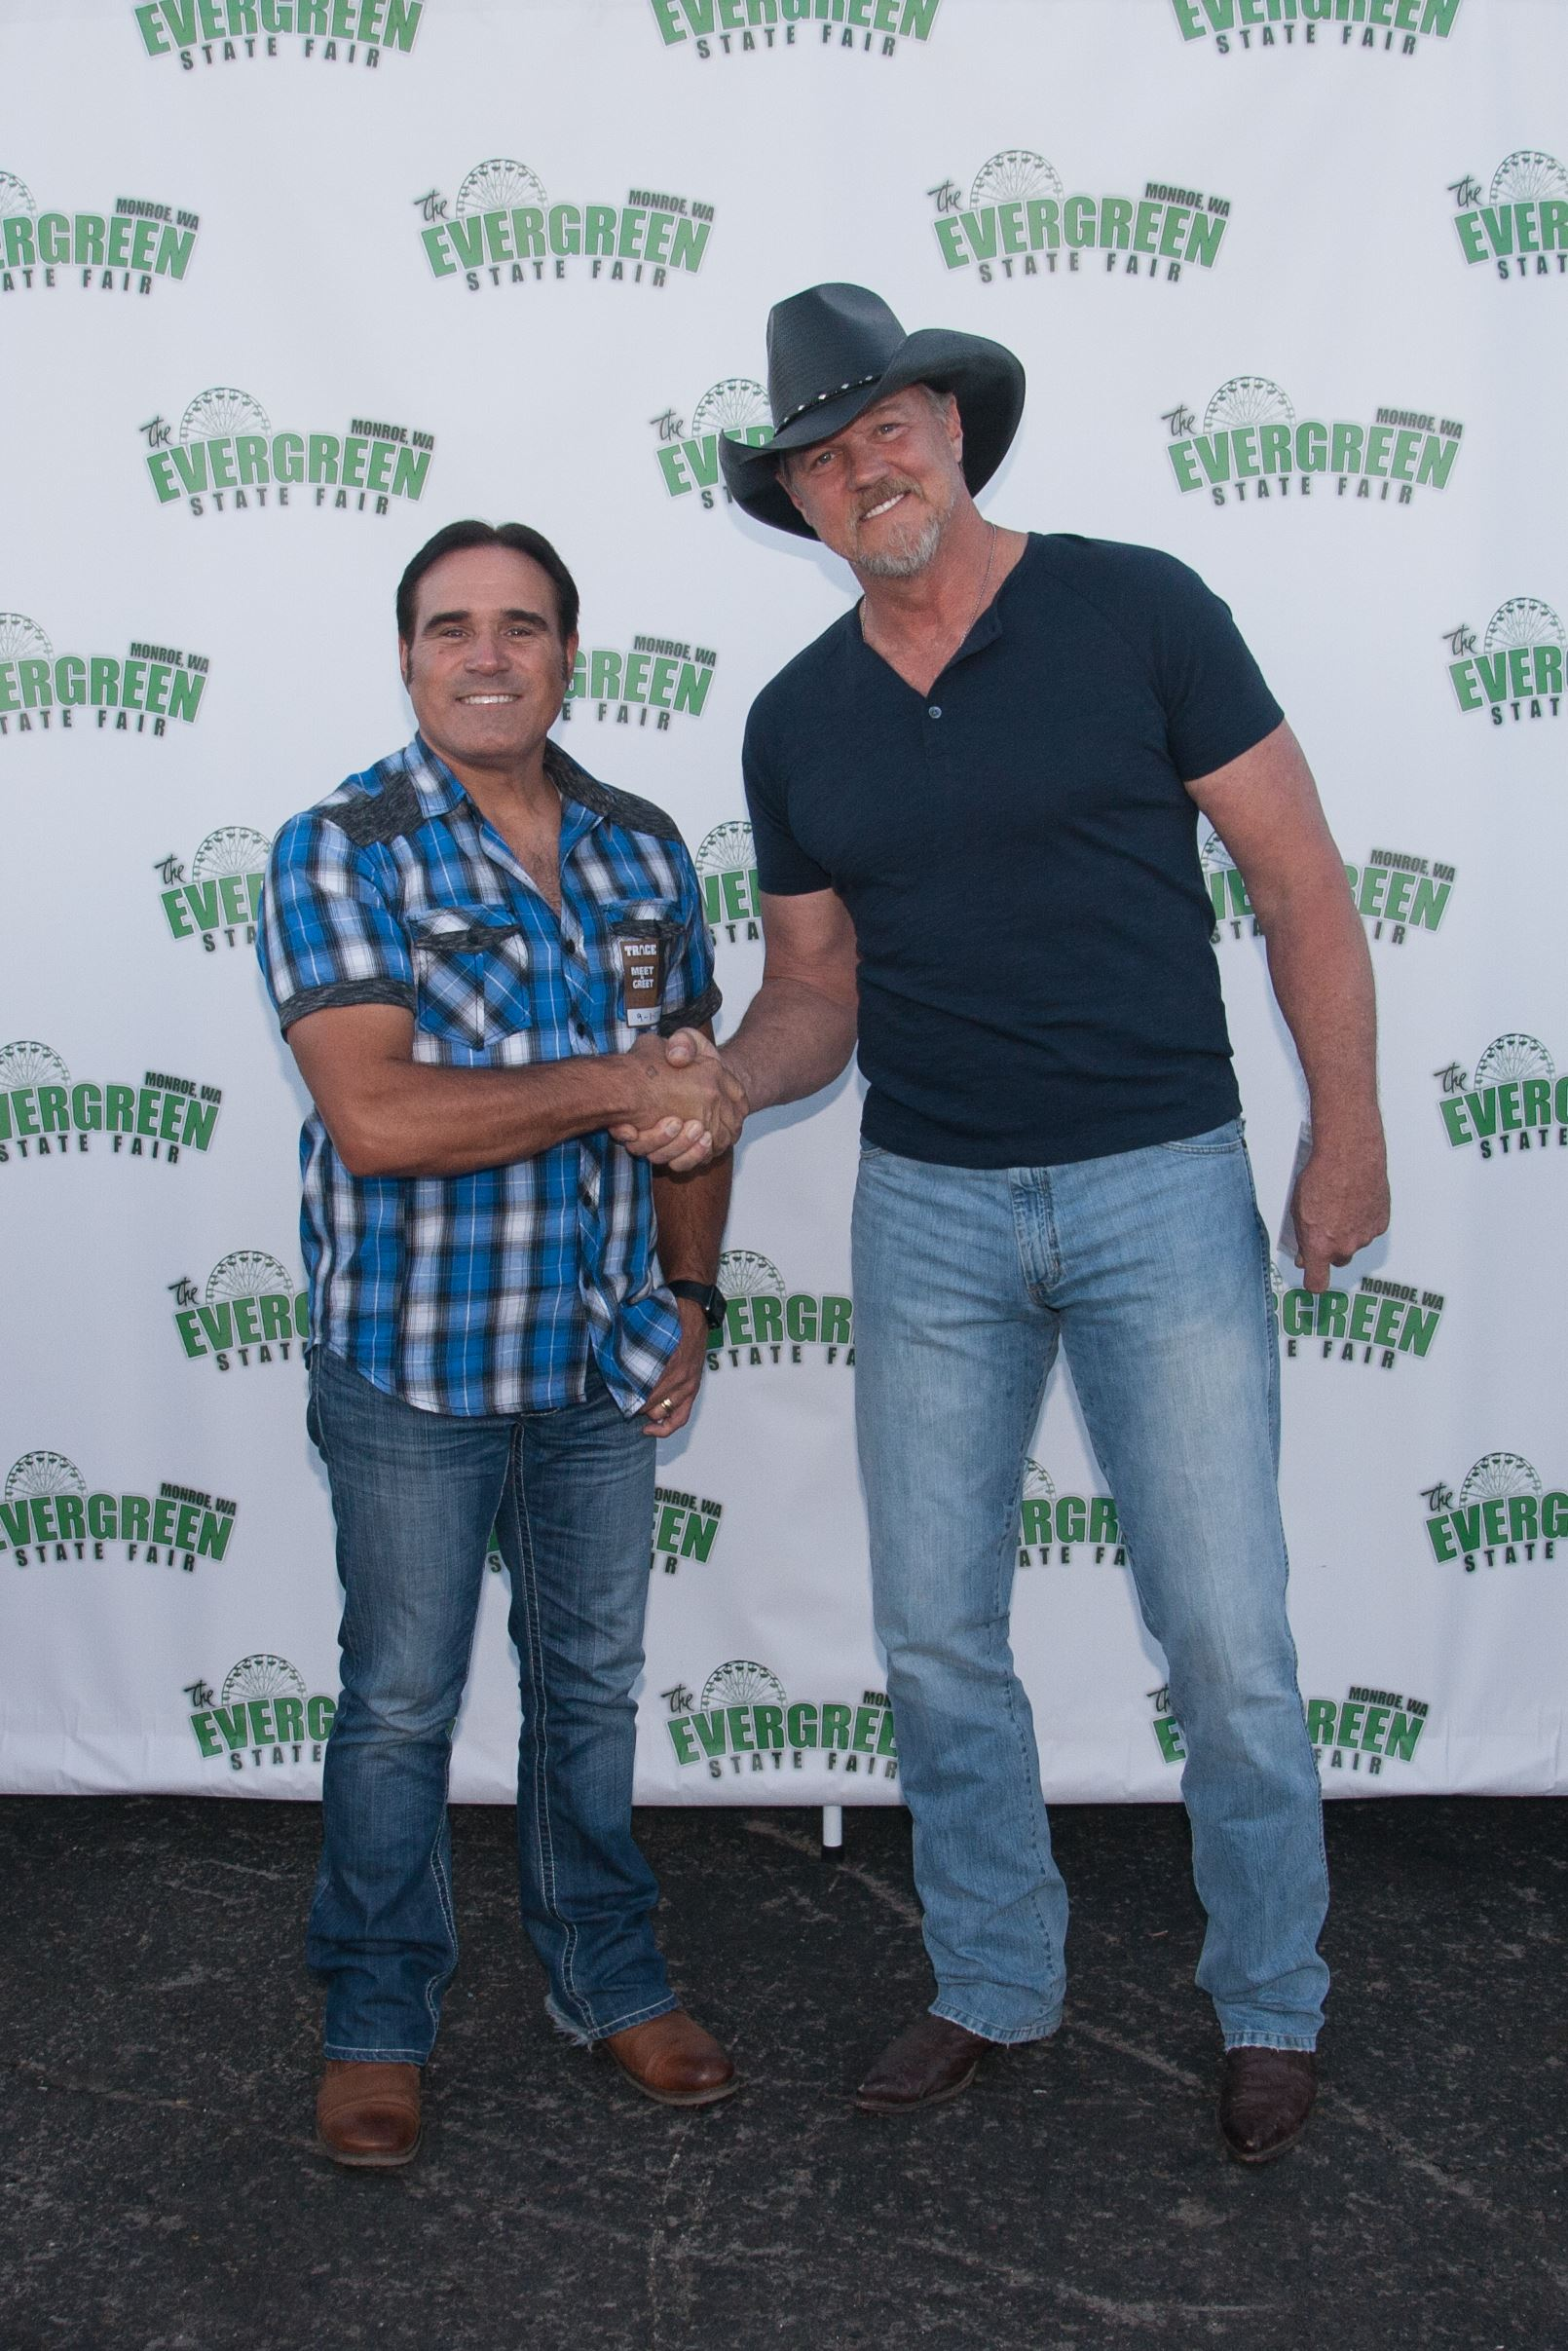 Evergreen state fairgrounds wa official website traceadkins81 kristyandbryce Choice Image